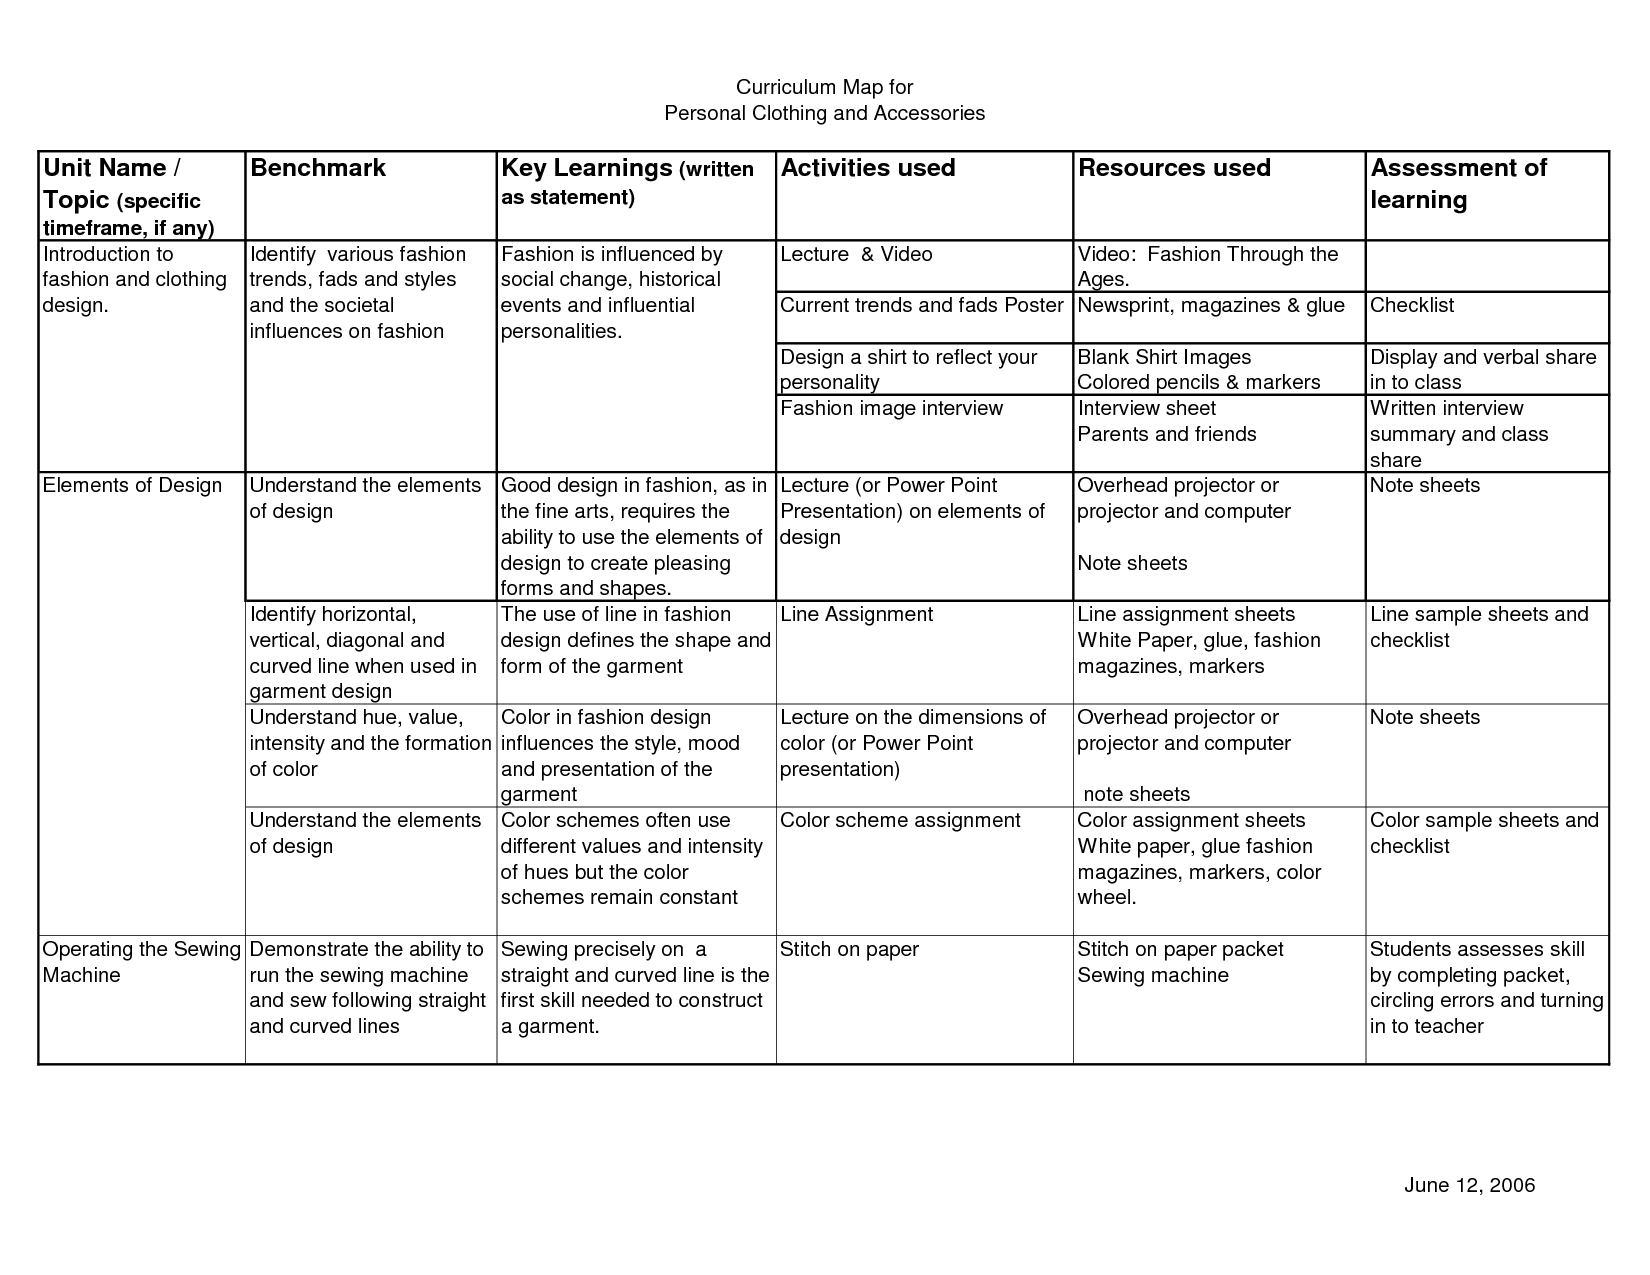 Blank Curriculum Map Template | Blank Color Wheel Worksheets Intended For Blank Curriculum Map Template